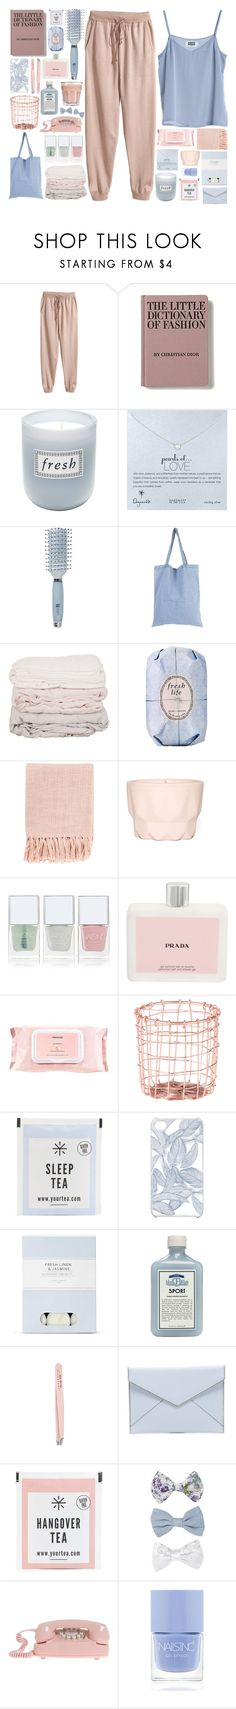 """""""You're all gonna watch me disappear into the sun"""" by hannah-gw-martin ❤ liked on Polyvore featuring MTWTFSS Weekday, H&M, Fresh, Dogeared, Goody, StyleNanda, Surya, Nails Inc., Prada and Mamonde"""